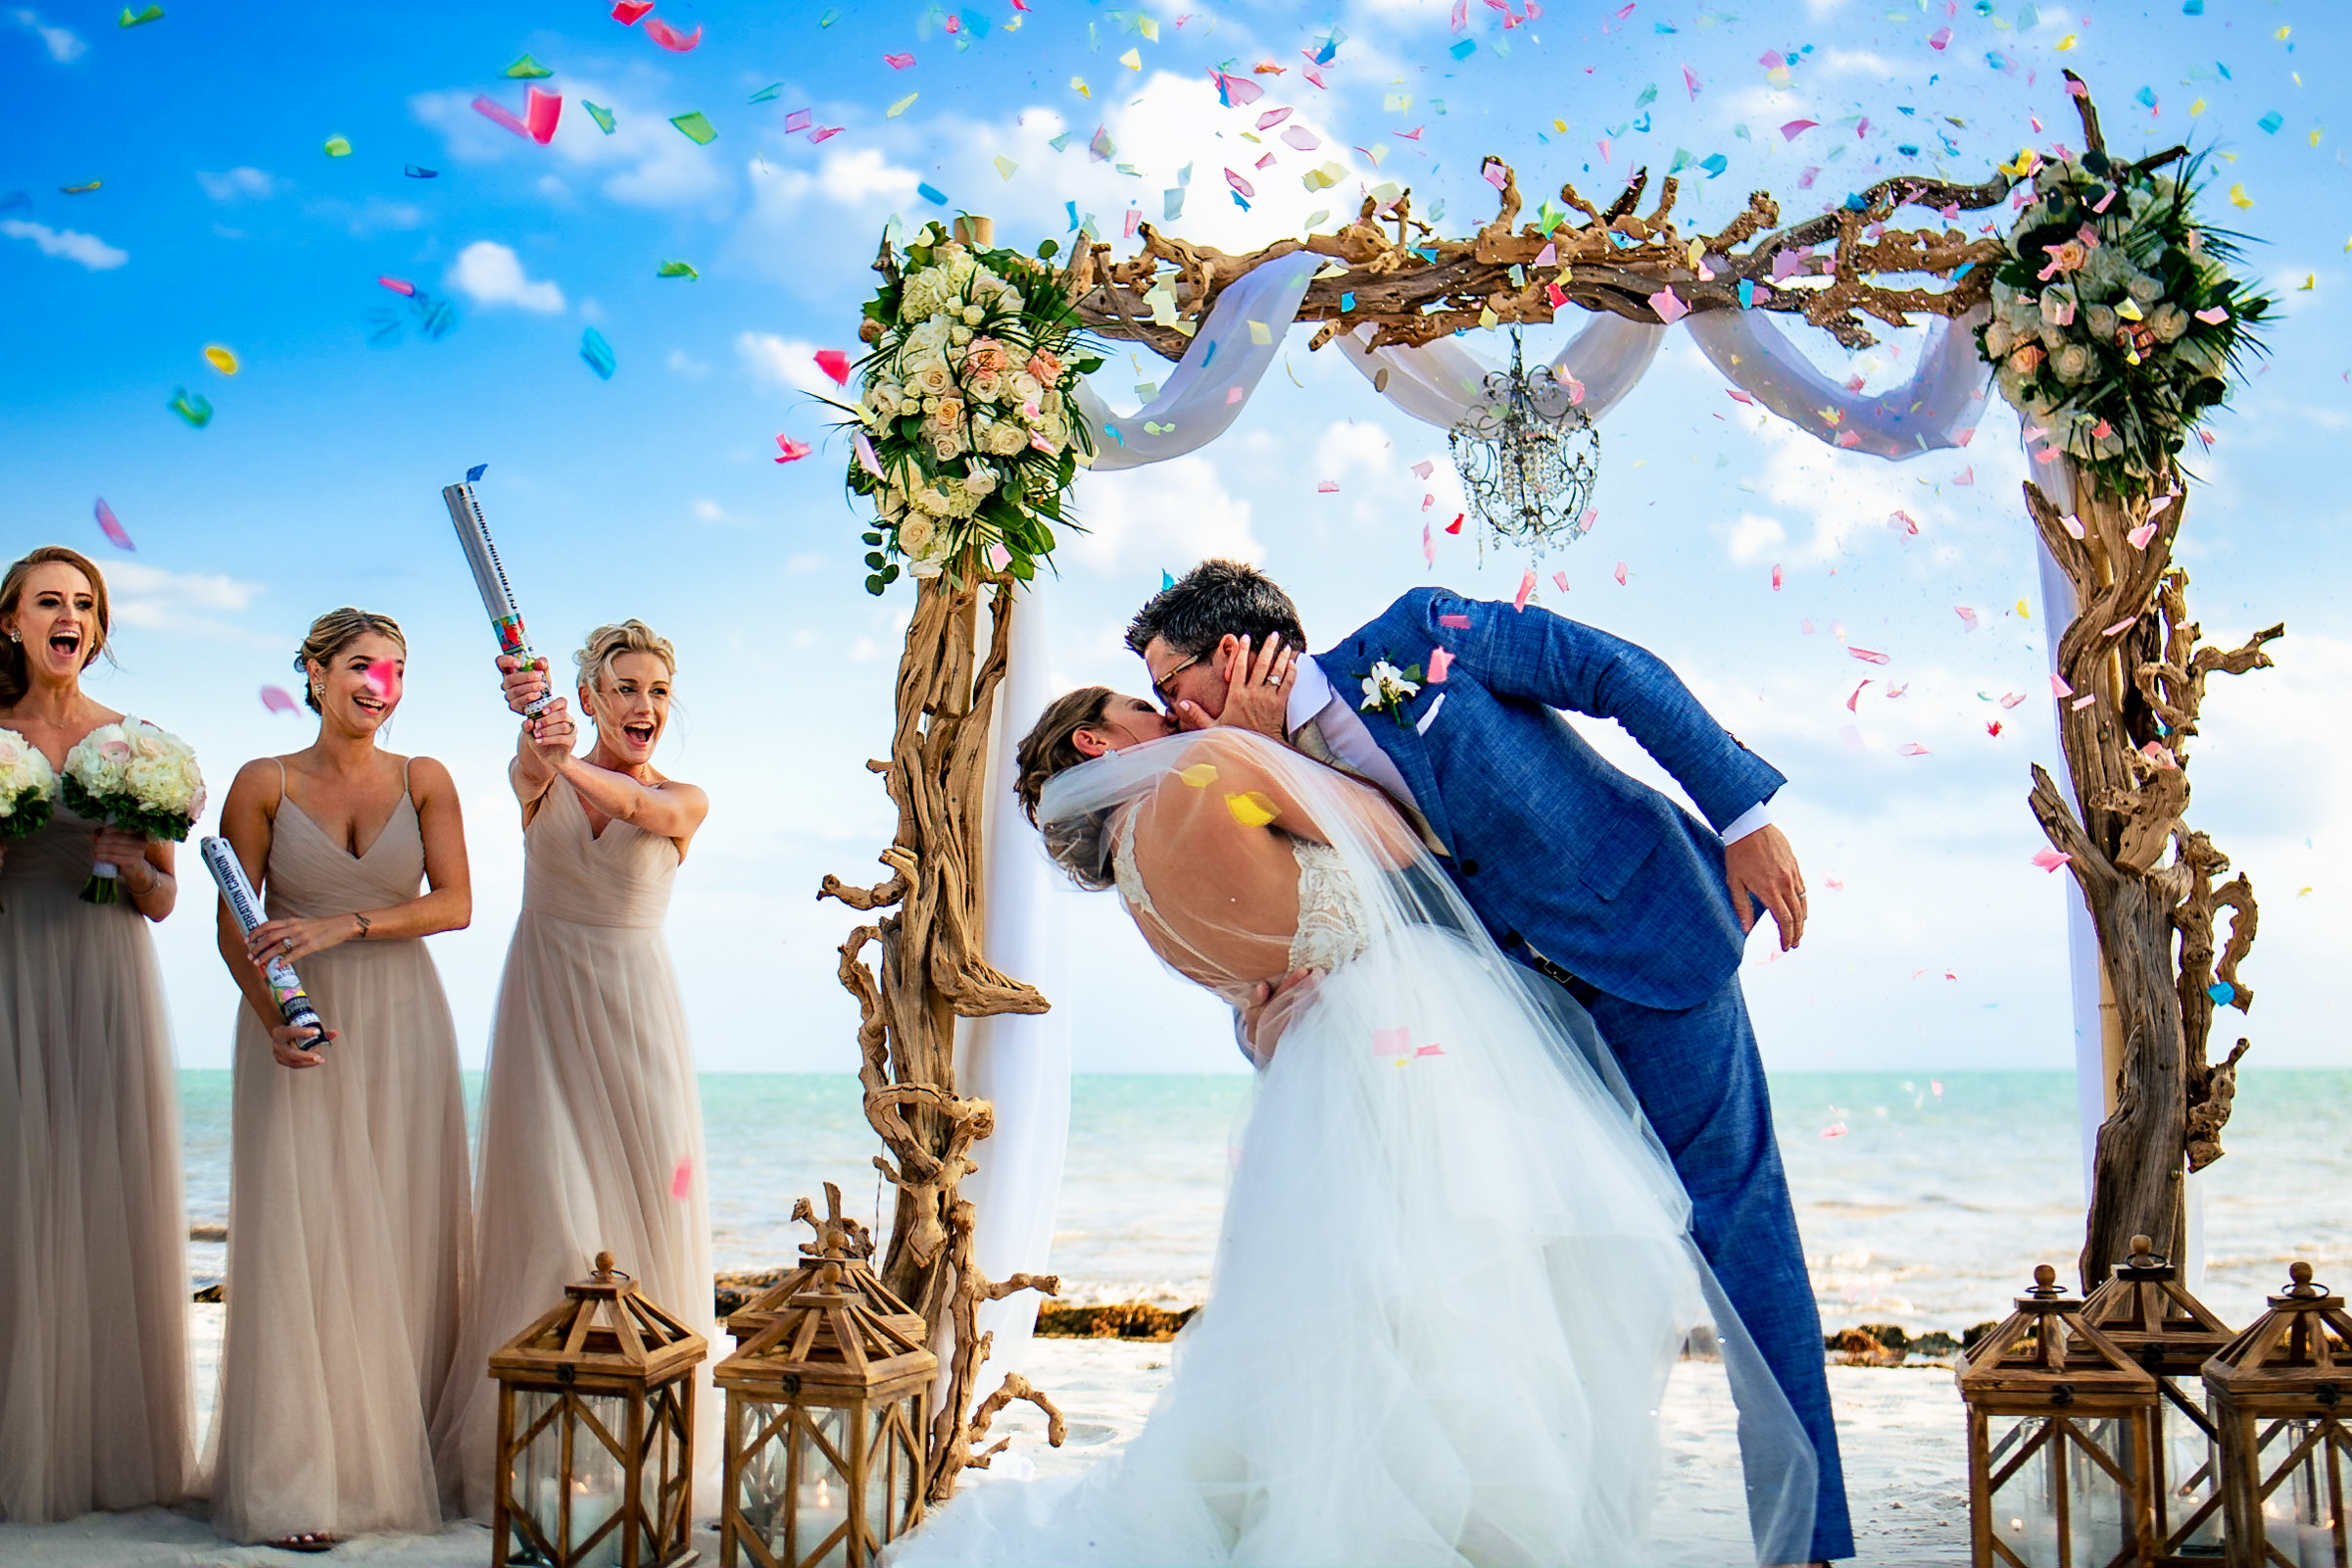 under-arbor-kiss-for-the-bride-michael-freas-photography